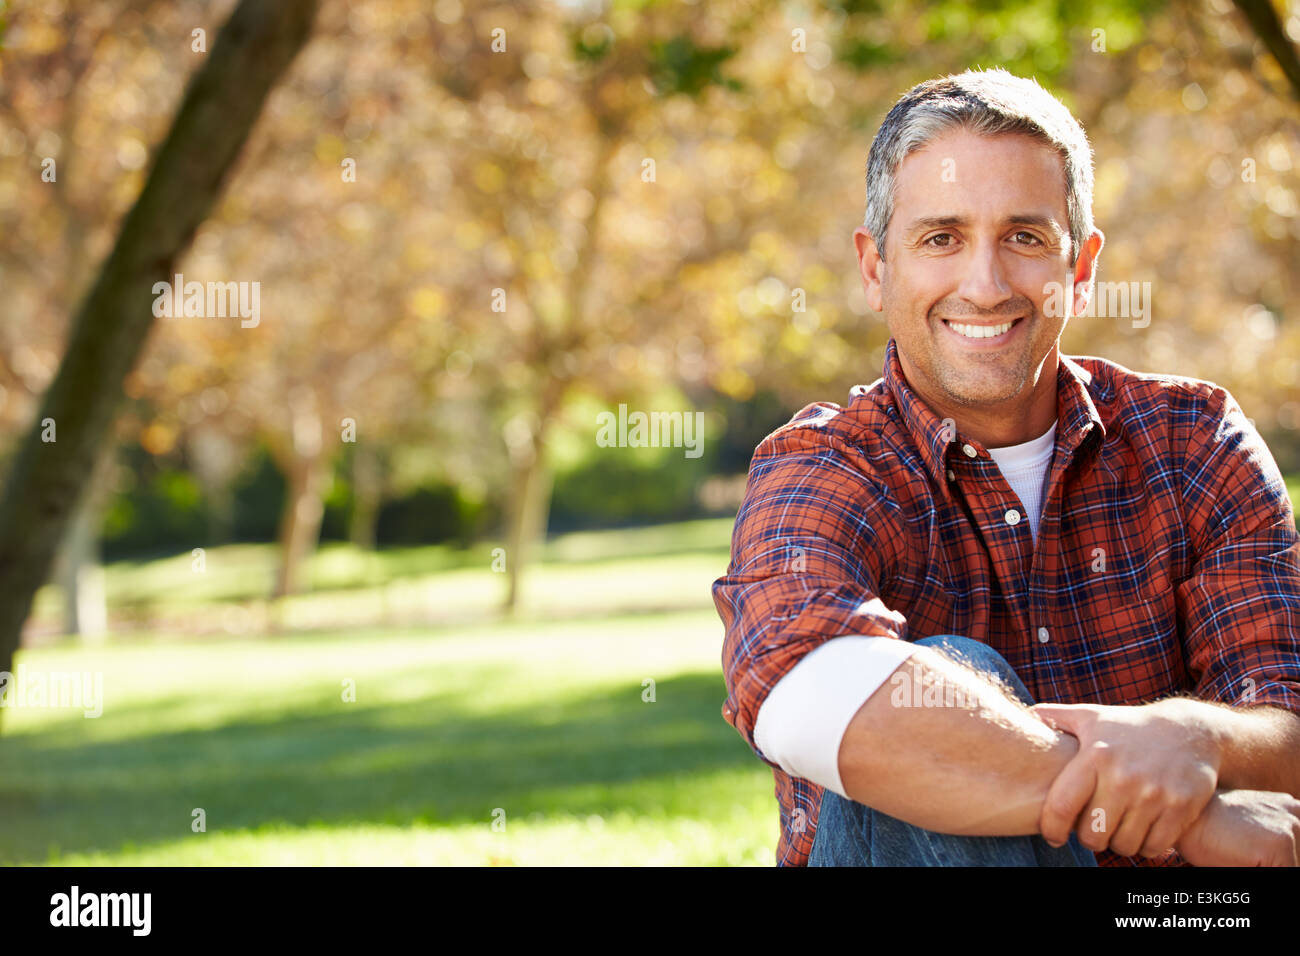 Portrait of Hispanic Man In Countryside Photo Stock